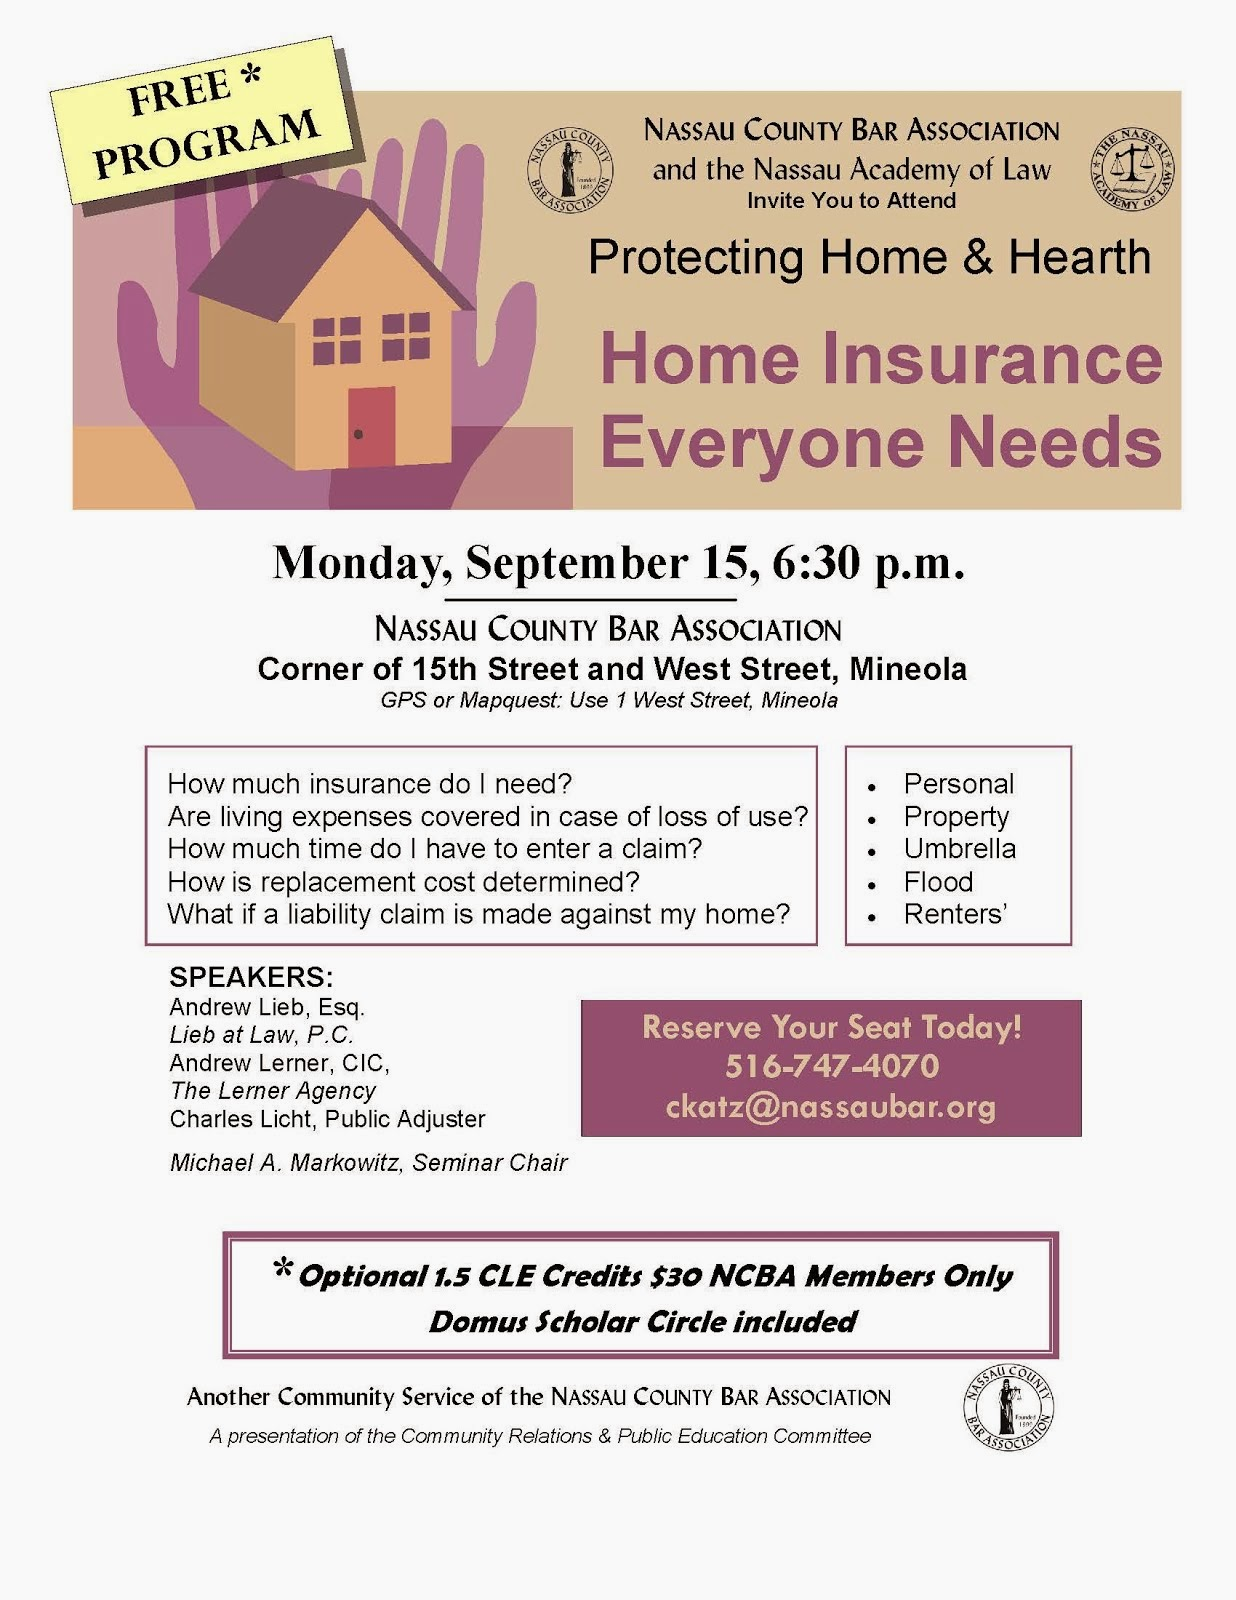 Free Seminar on Homeowners' Insurance 9/15/14